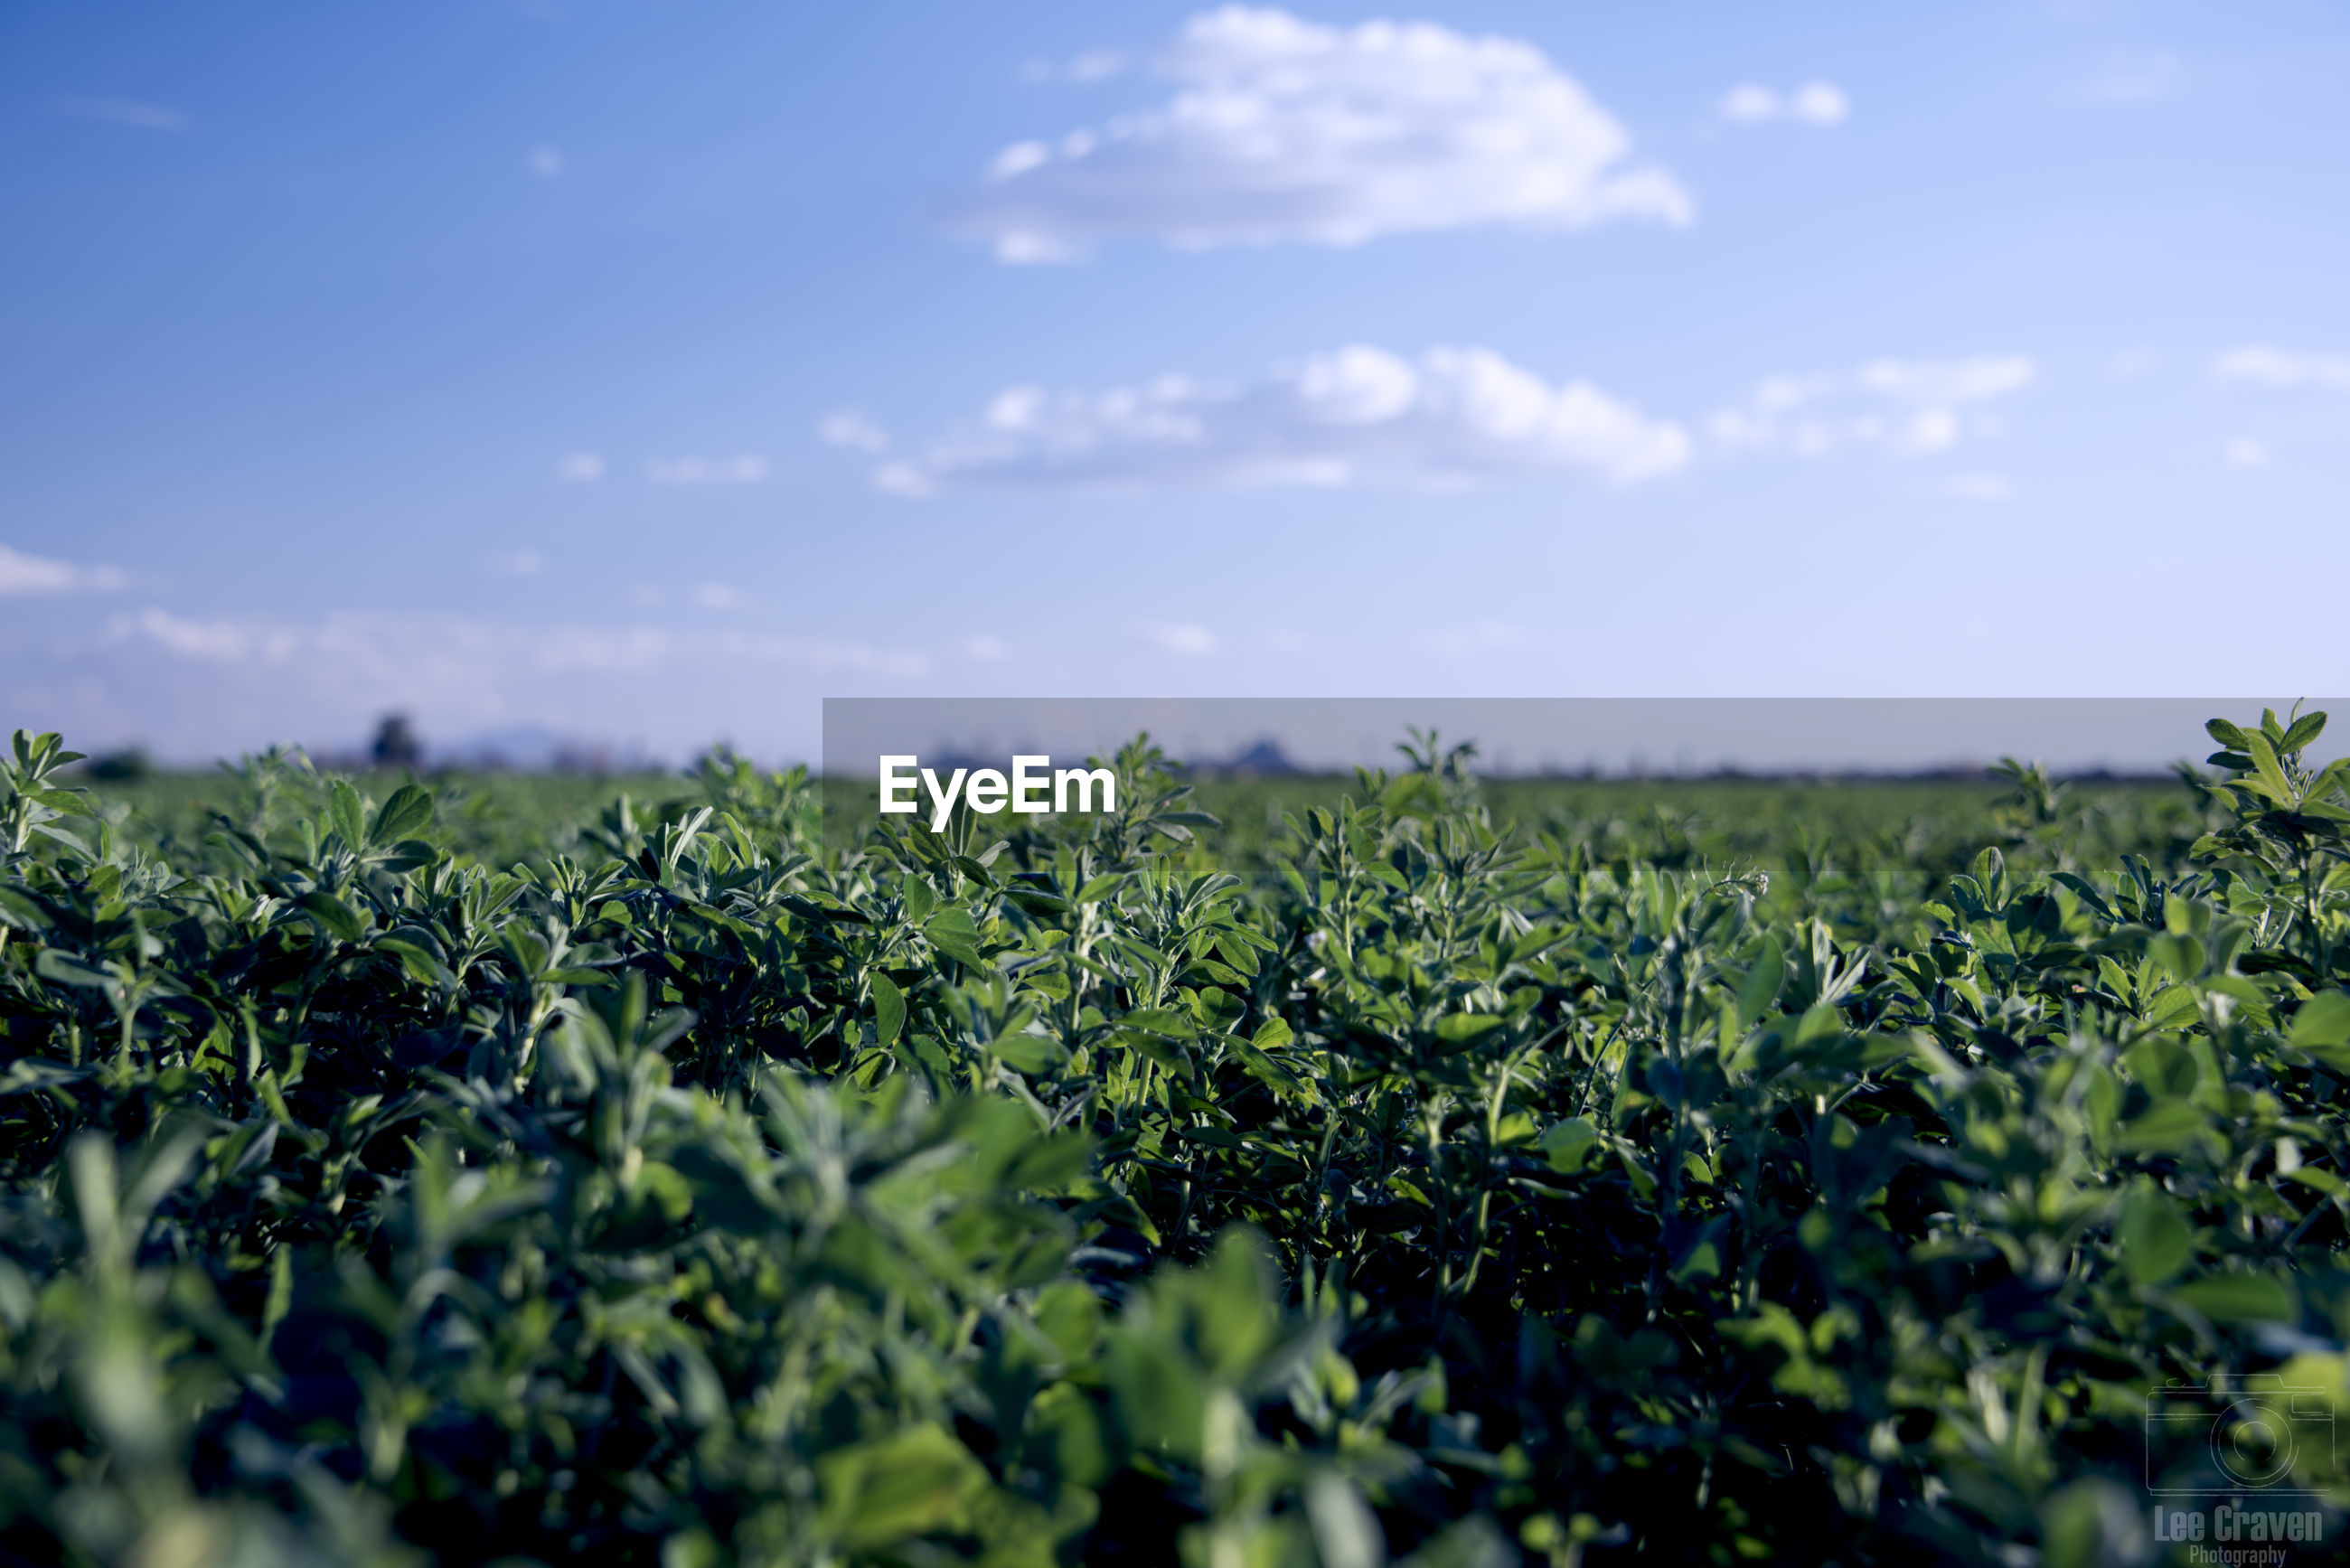 CLOSE-UP OF CROP IN FIELD AGAINST SKY